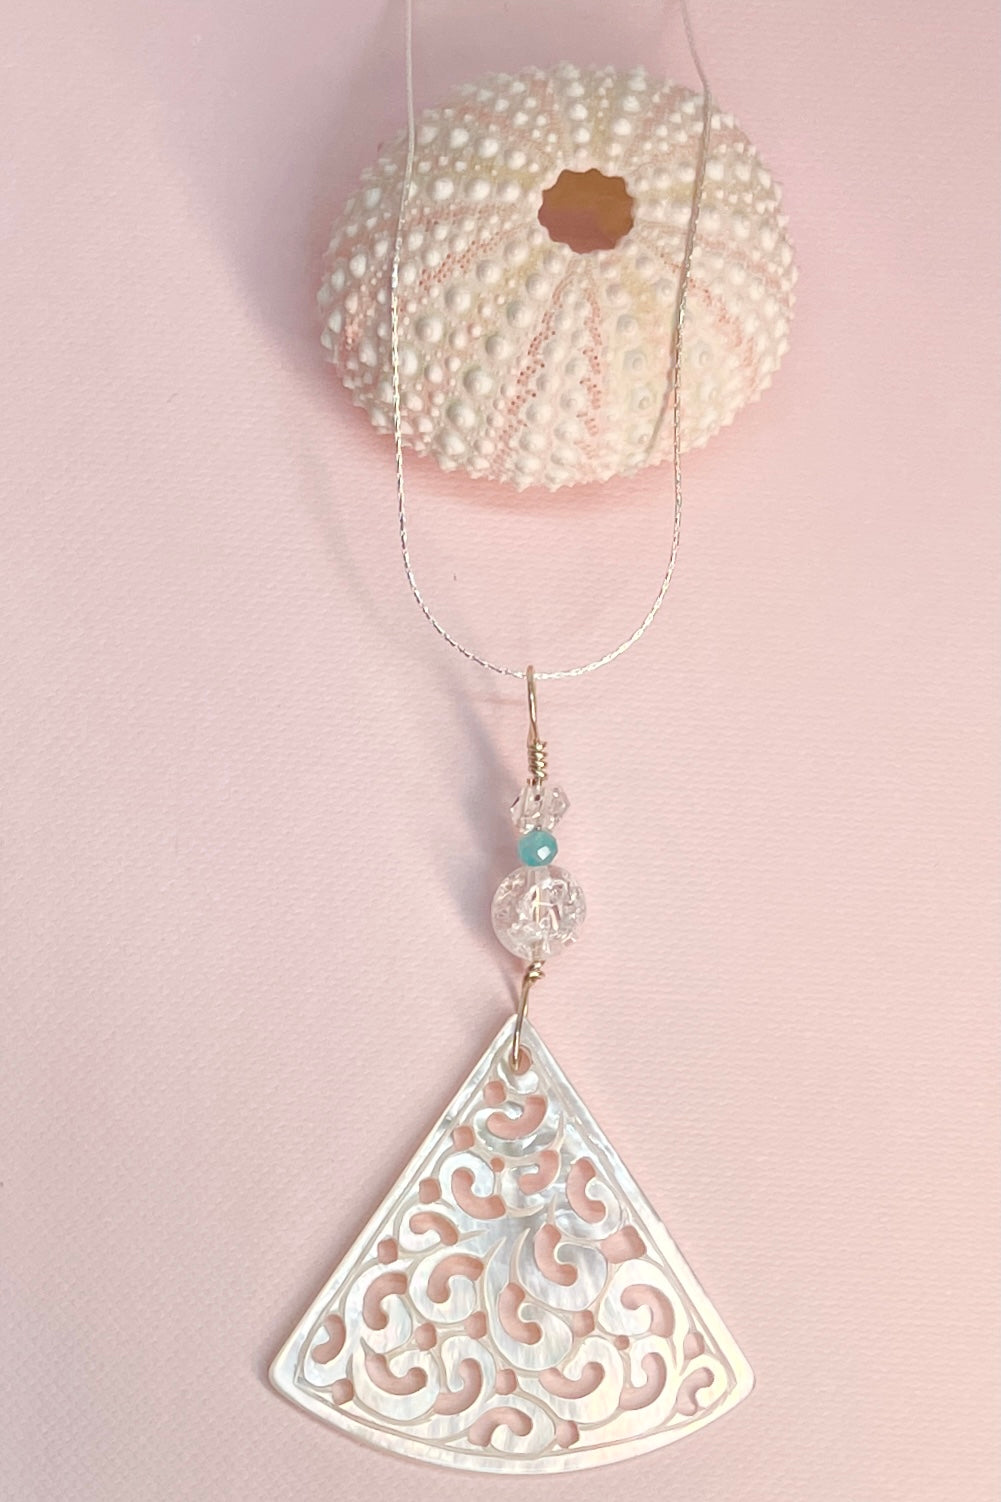 The Pendant Cay Caribbean Scrolls is hand cut from a mother of pearl shell, it has a chunk of crackle quartz to set off the pearly lustre in the shell,